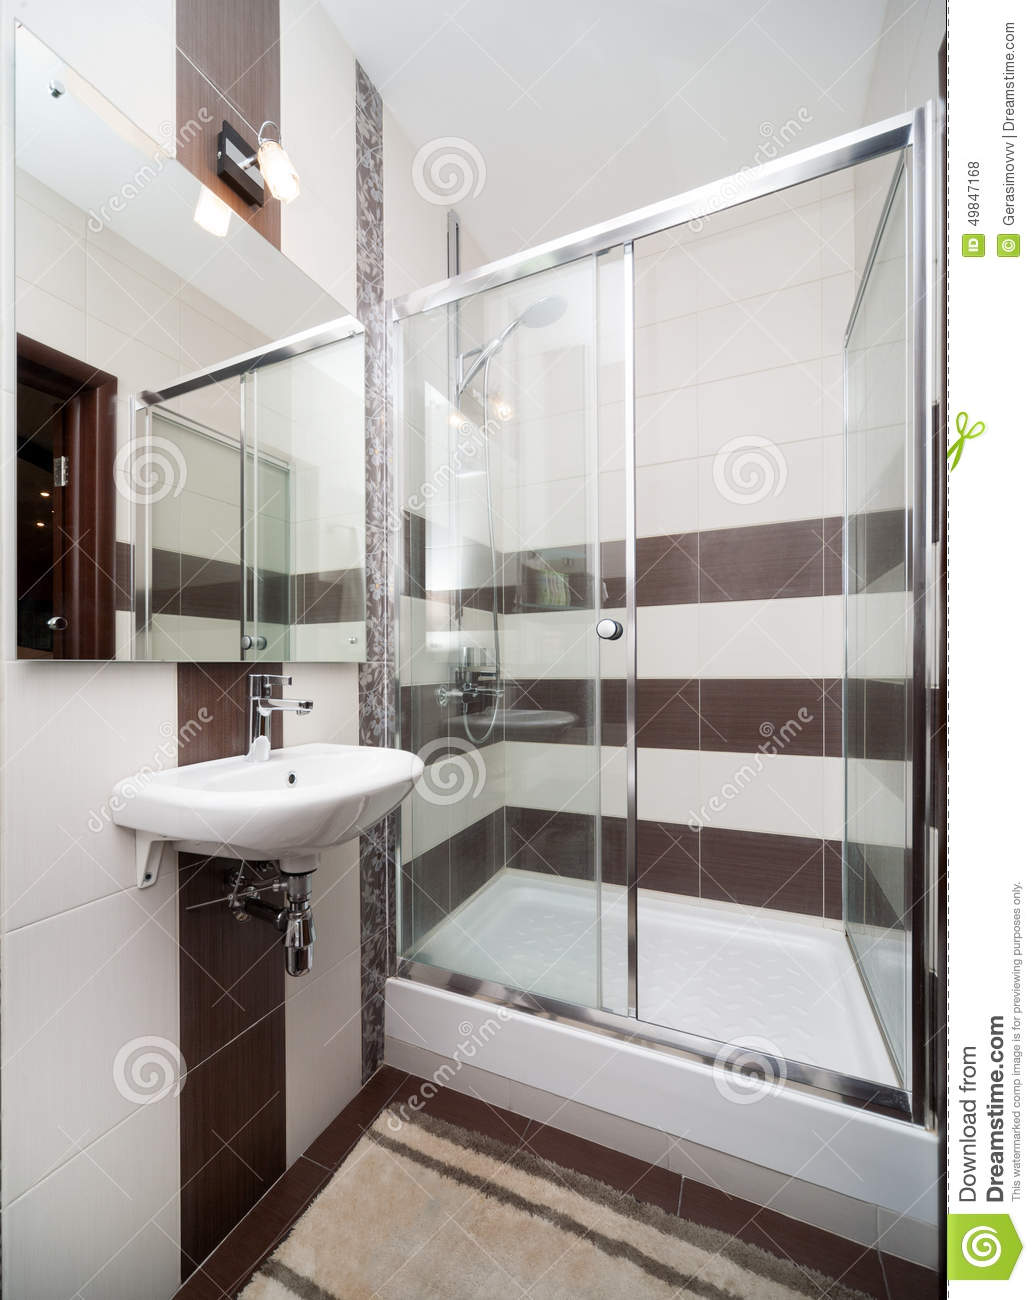 Small bathroom with modern white shower stock image for Small white modern bathroom